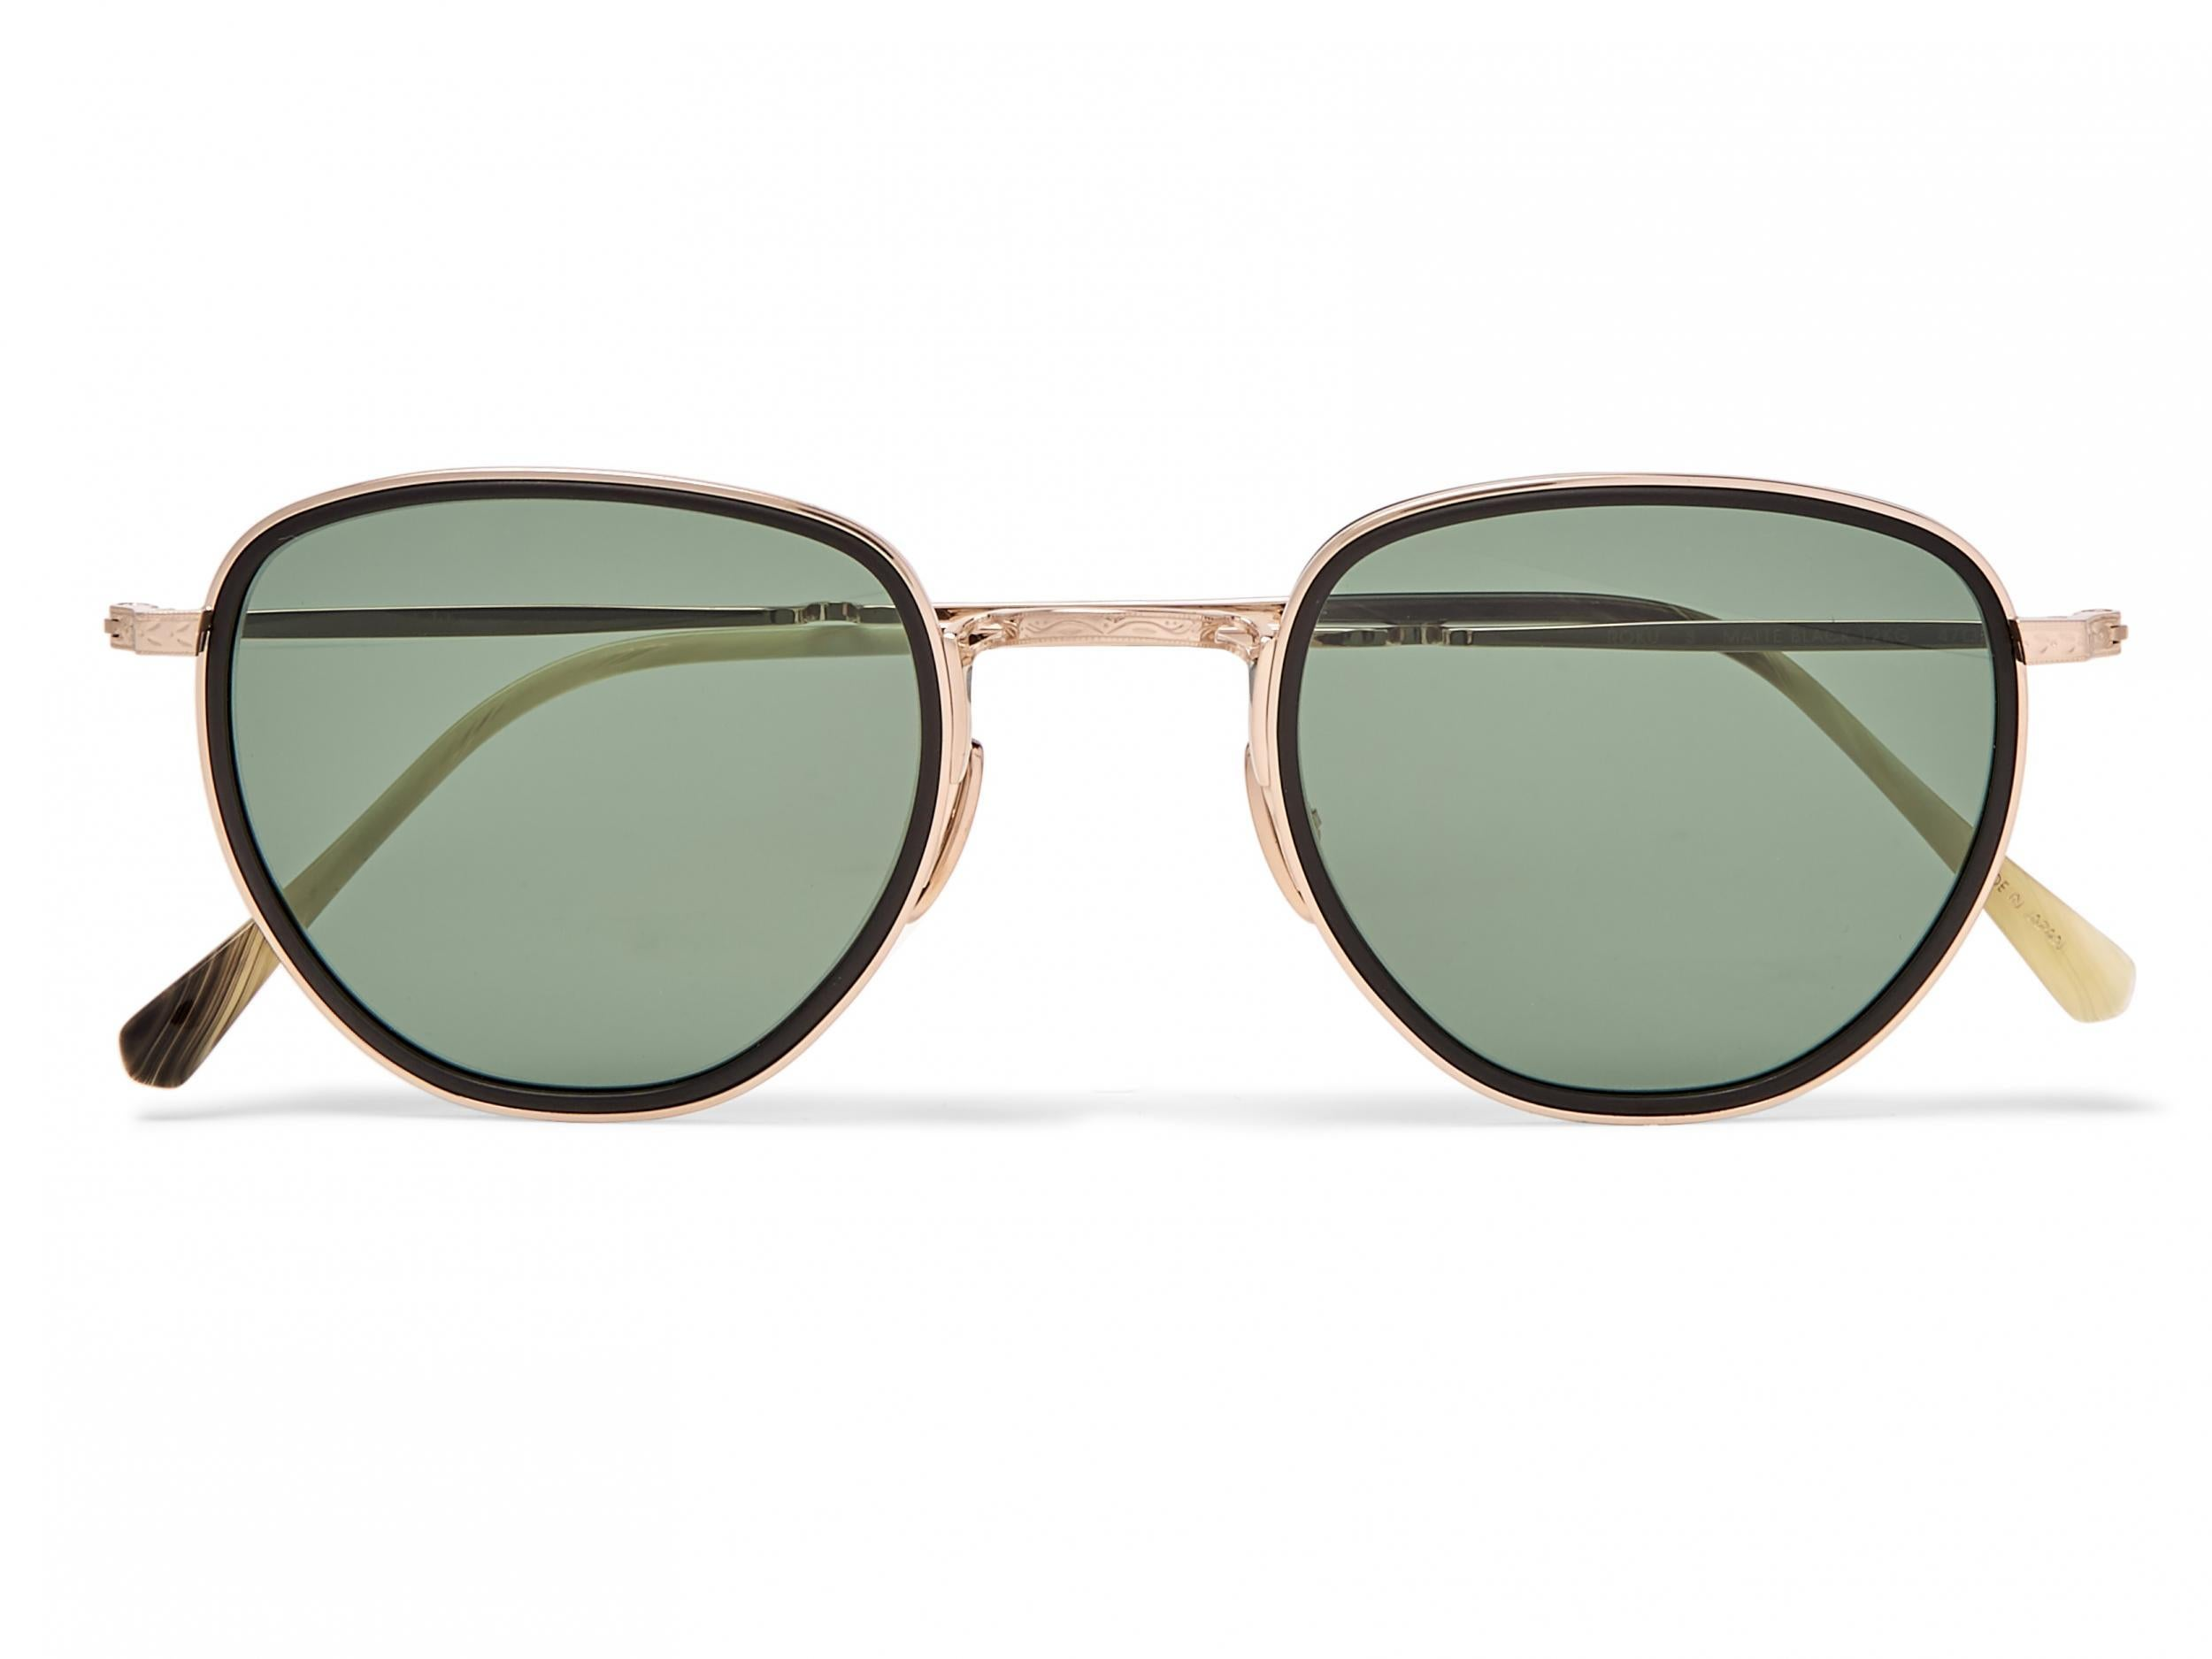 7e5e82bc50 10 best men's sunglasses to invest in this summer | The Independent